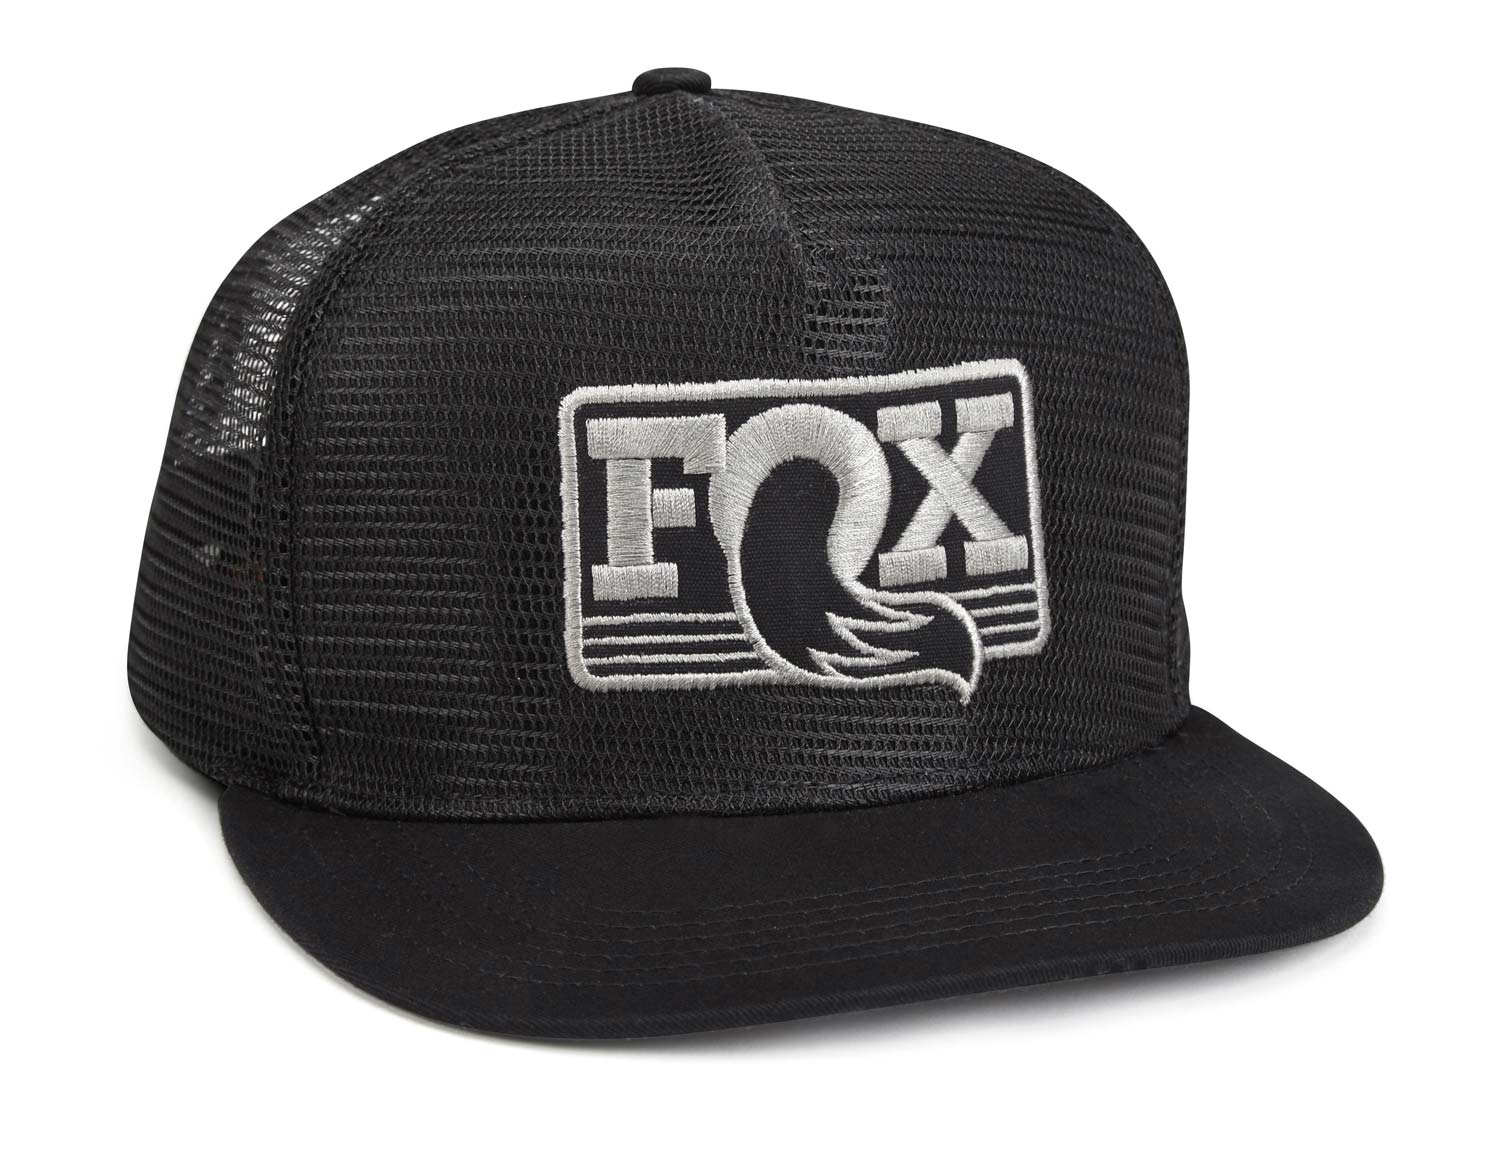 cheaper 1a092 74996 australia fox heather green clouded curved peak flexfit cap all meshed up hat  all meshed up